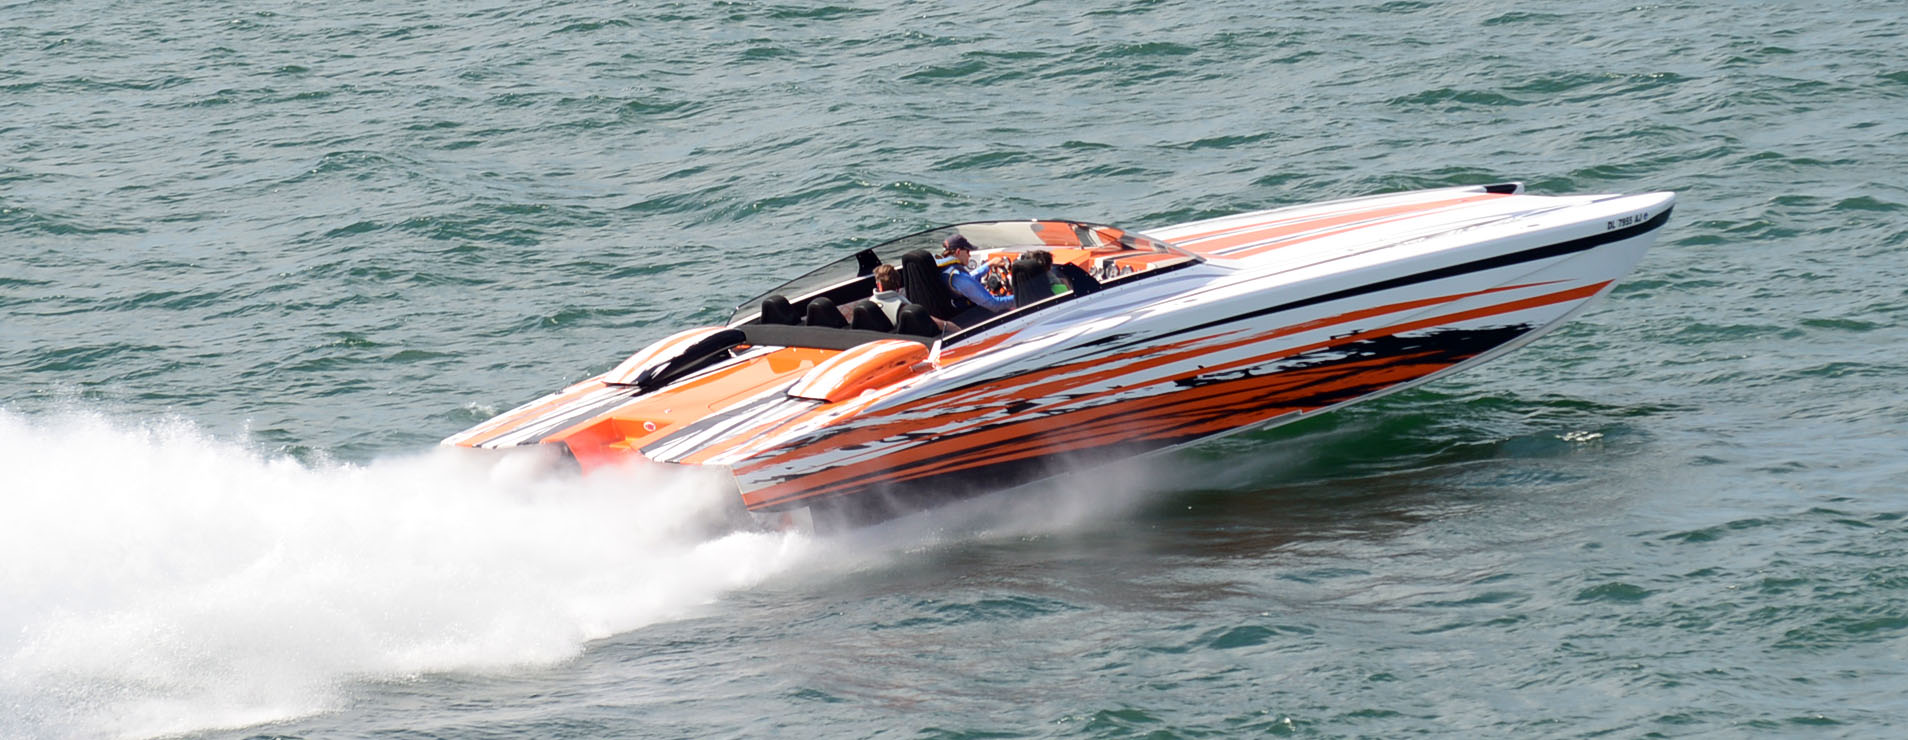 The sixth annual Hartwell Lake Poker Run in South Carolina attracted more than 200 boats. Photo courtesy Ashley Addison Photography